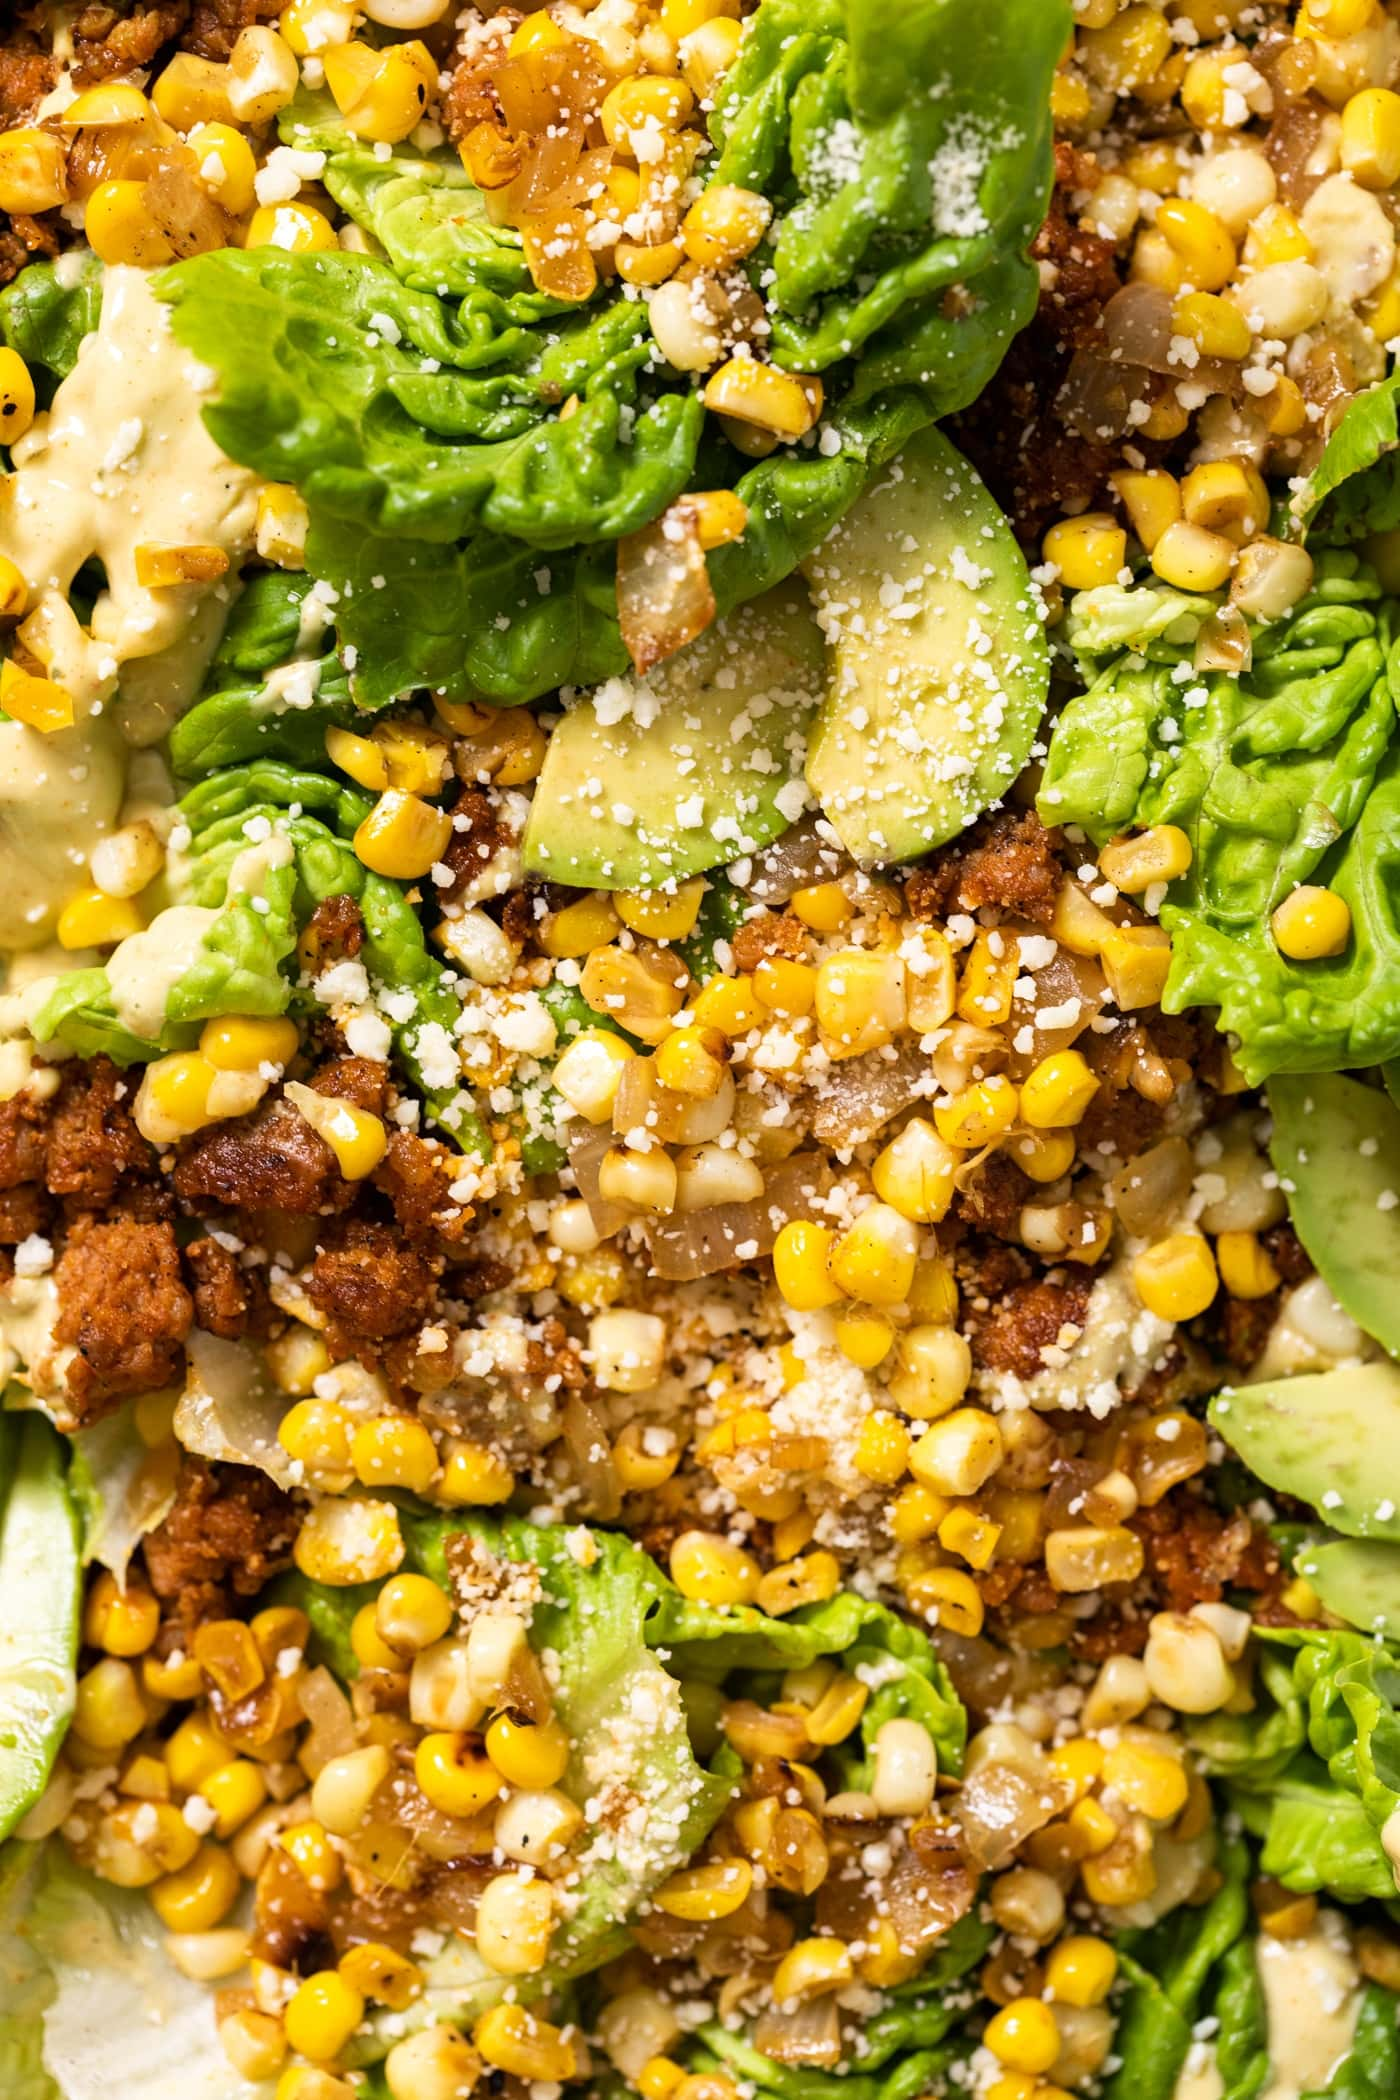 Top down close up view of big pieces of green lettuce topped with sweet corn and chorizo pieces after being cooked and topped with creamy taupe colored dressing